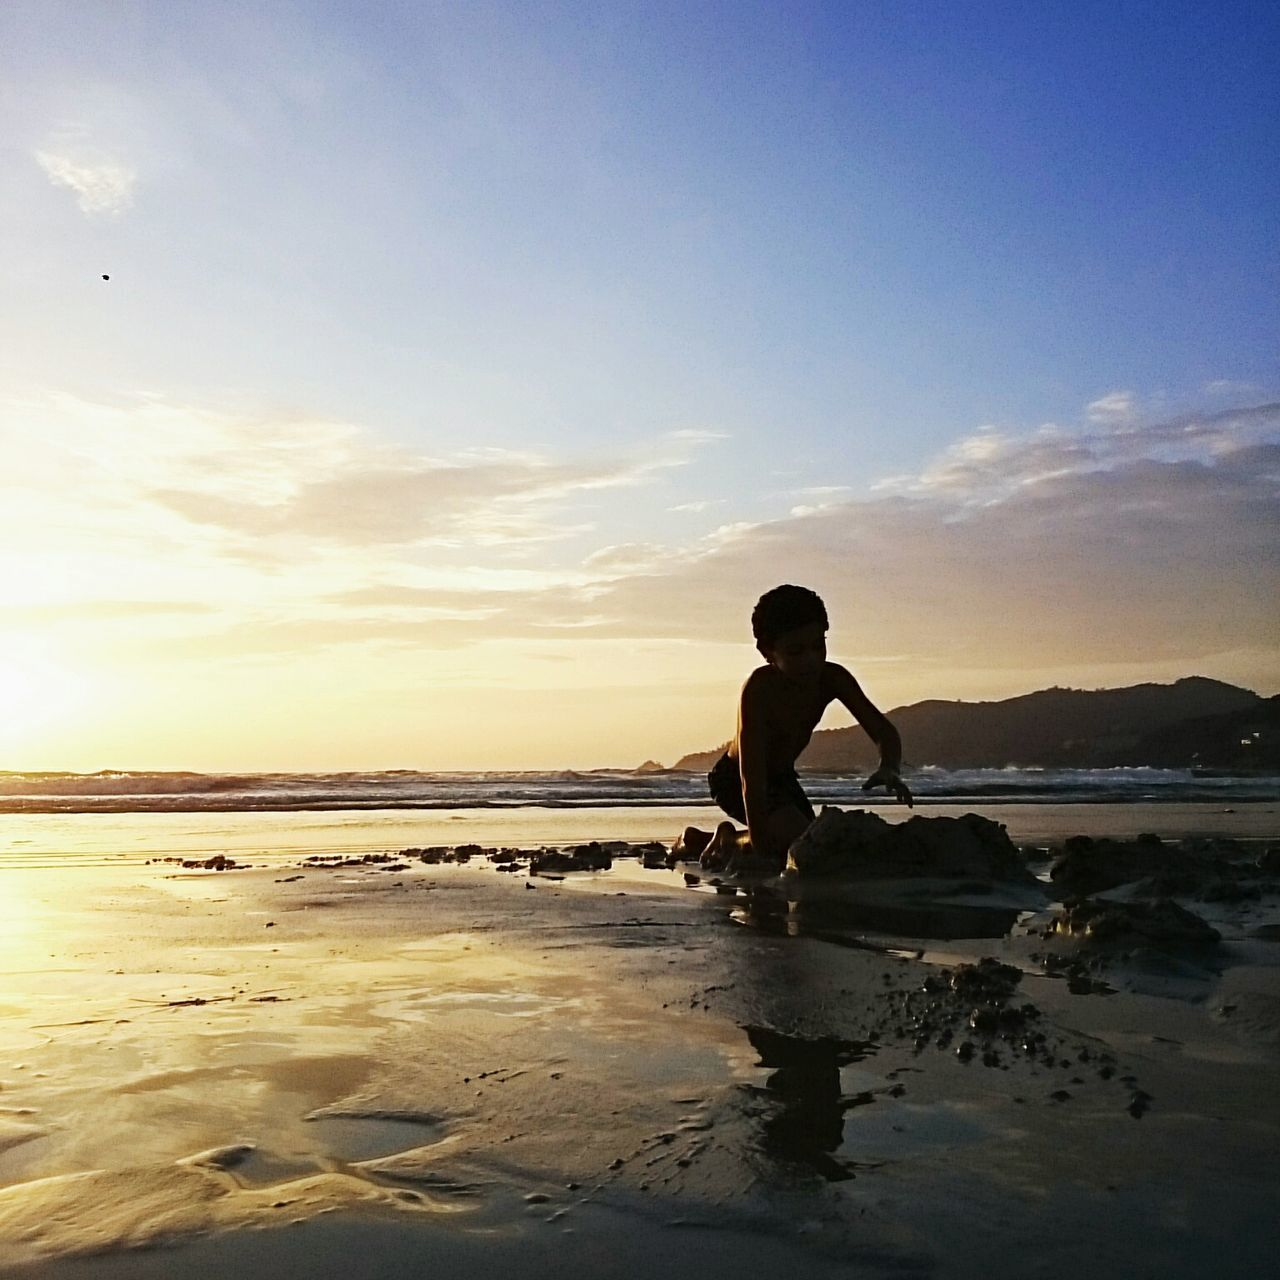 sea, water, real people, beach, sky, one person, standing, leisure activity, beauty in nature, scenics, full length, nature, silhouette, lifestyles, horizon over water, cloud - sky, men, sunset, outdoors, day, people